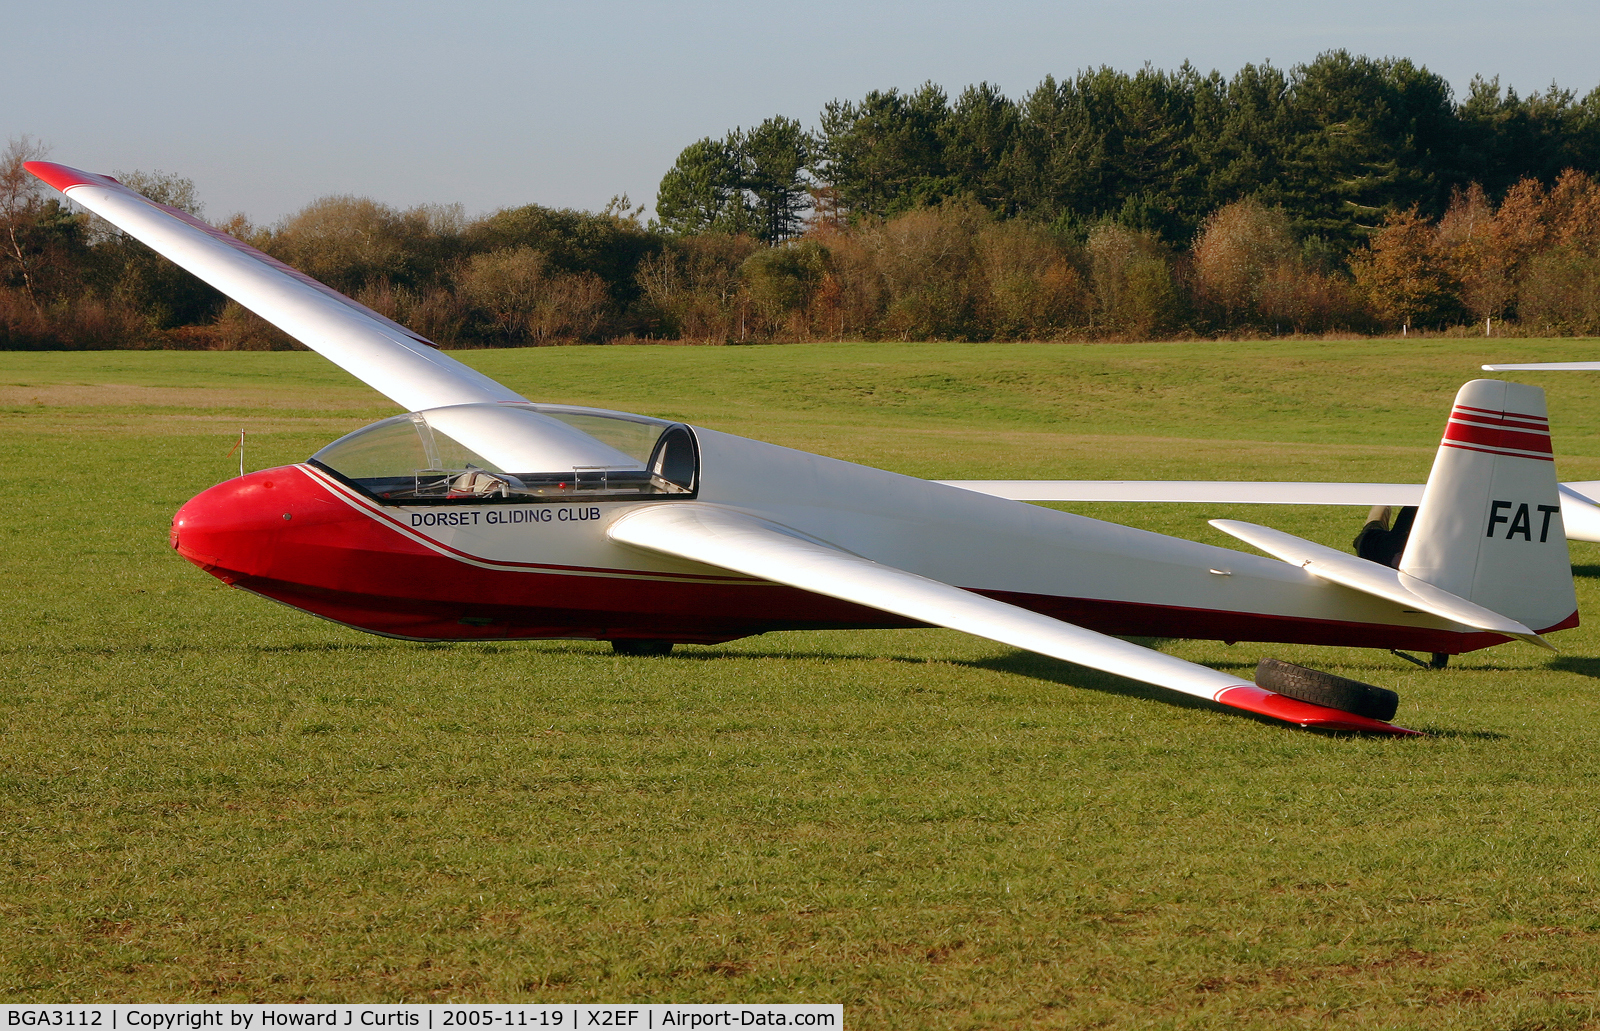 BGA3112, Schleicher ASK-13 C/N 13528, At the Dorset Gliding Club airfield at Eyres Field, Gallows Hill. Now G-DFAT.